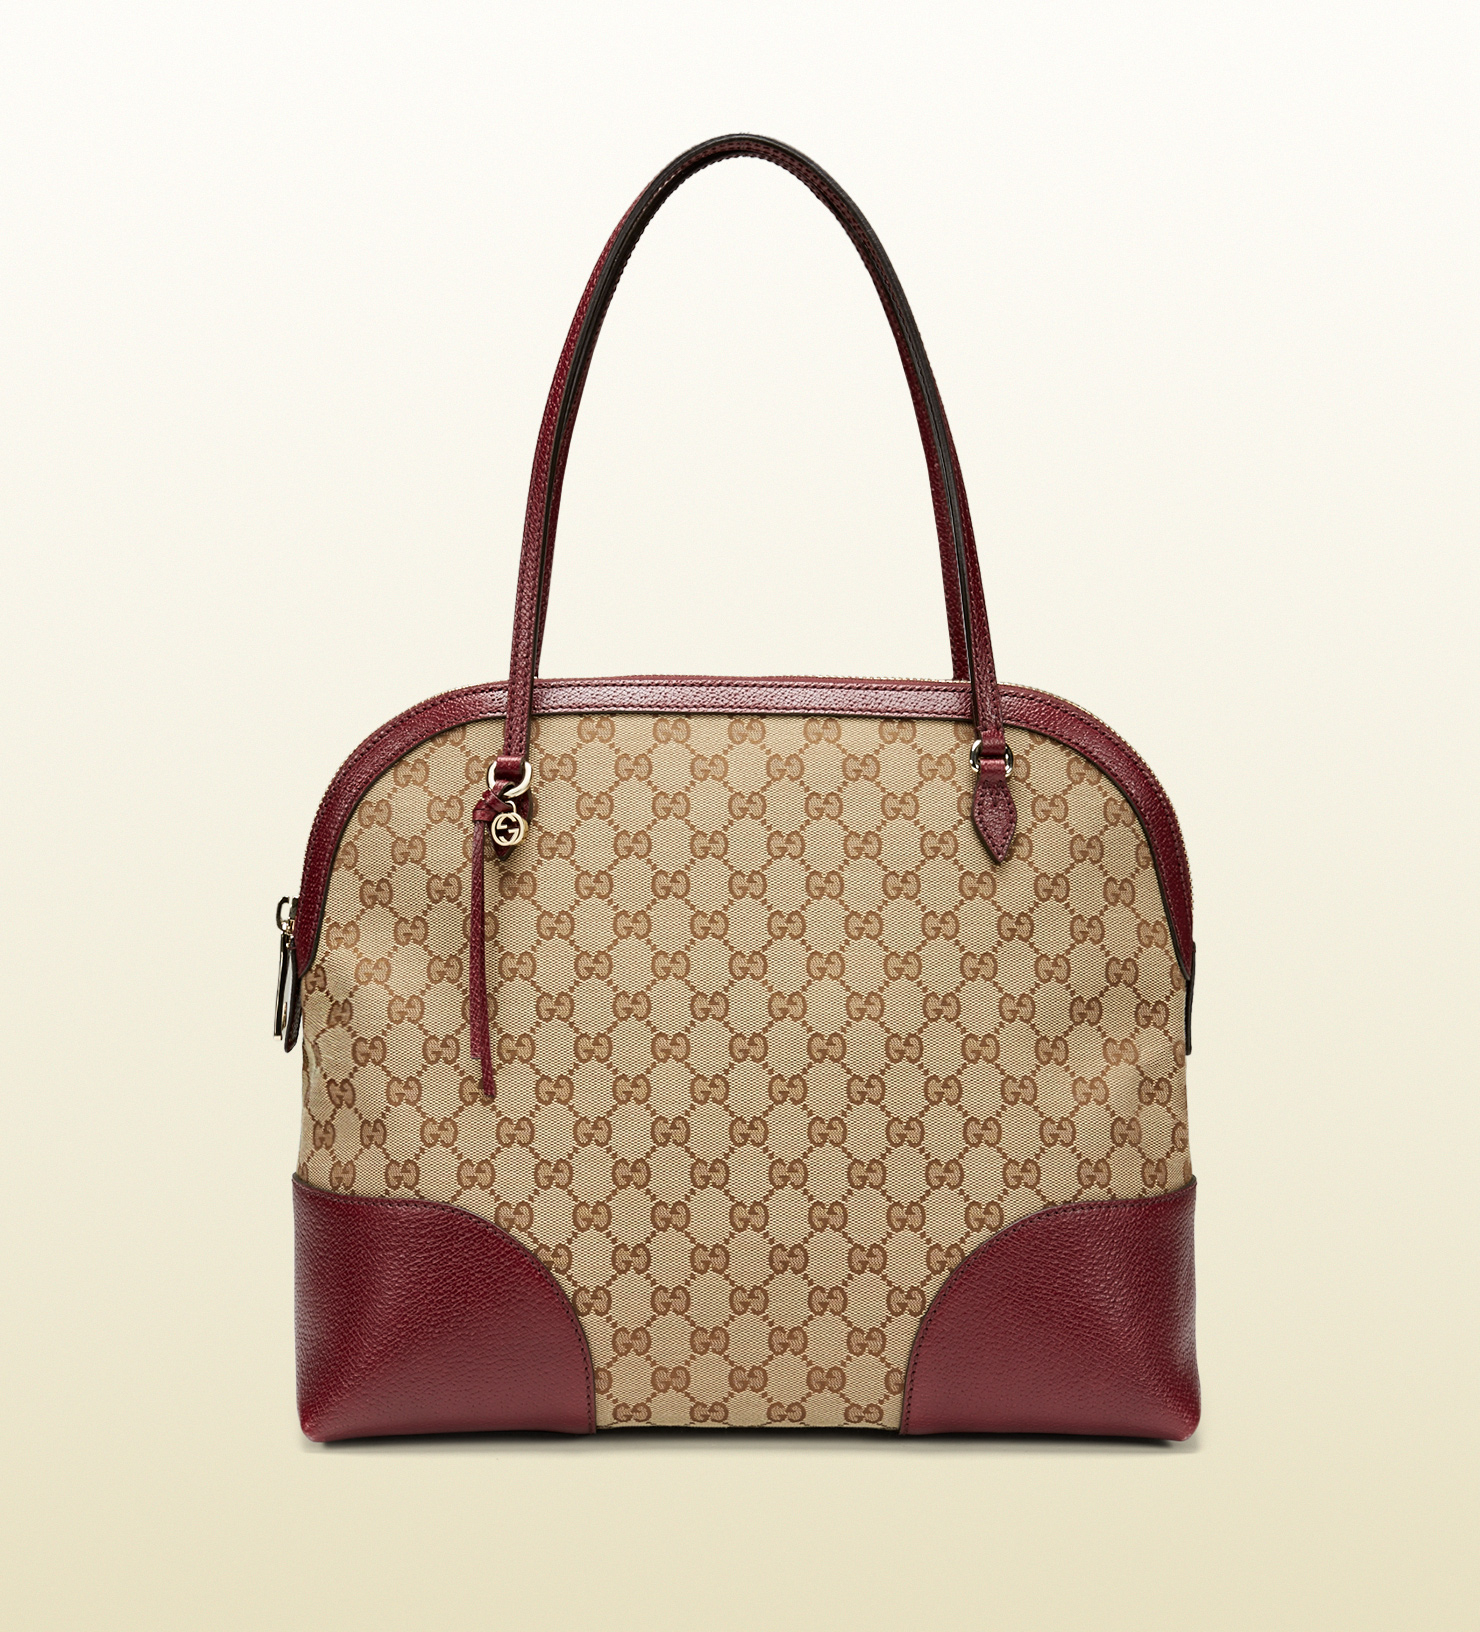 9f79d4a4eec Lyst - Gucci Bree Original Gg Canvas Shoulder Bag in Purple